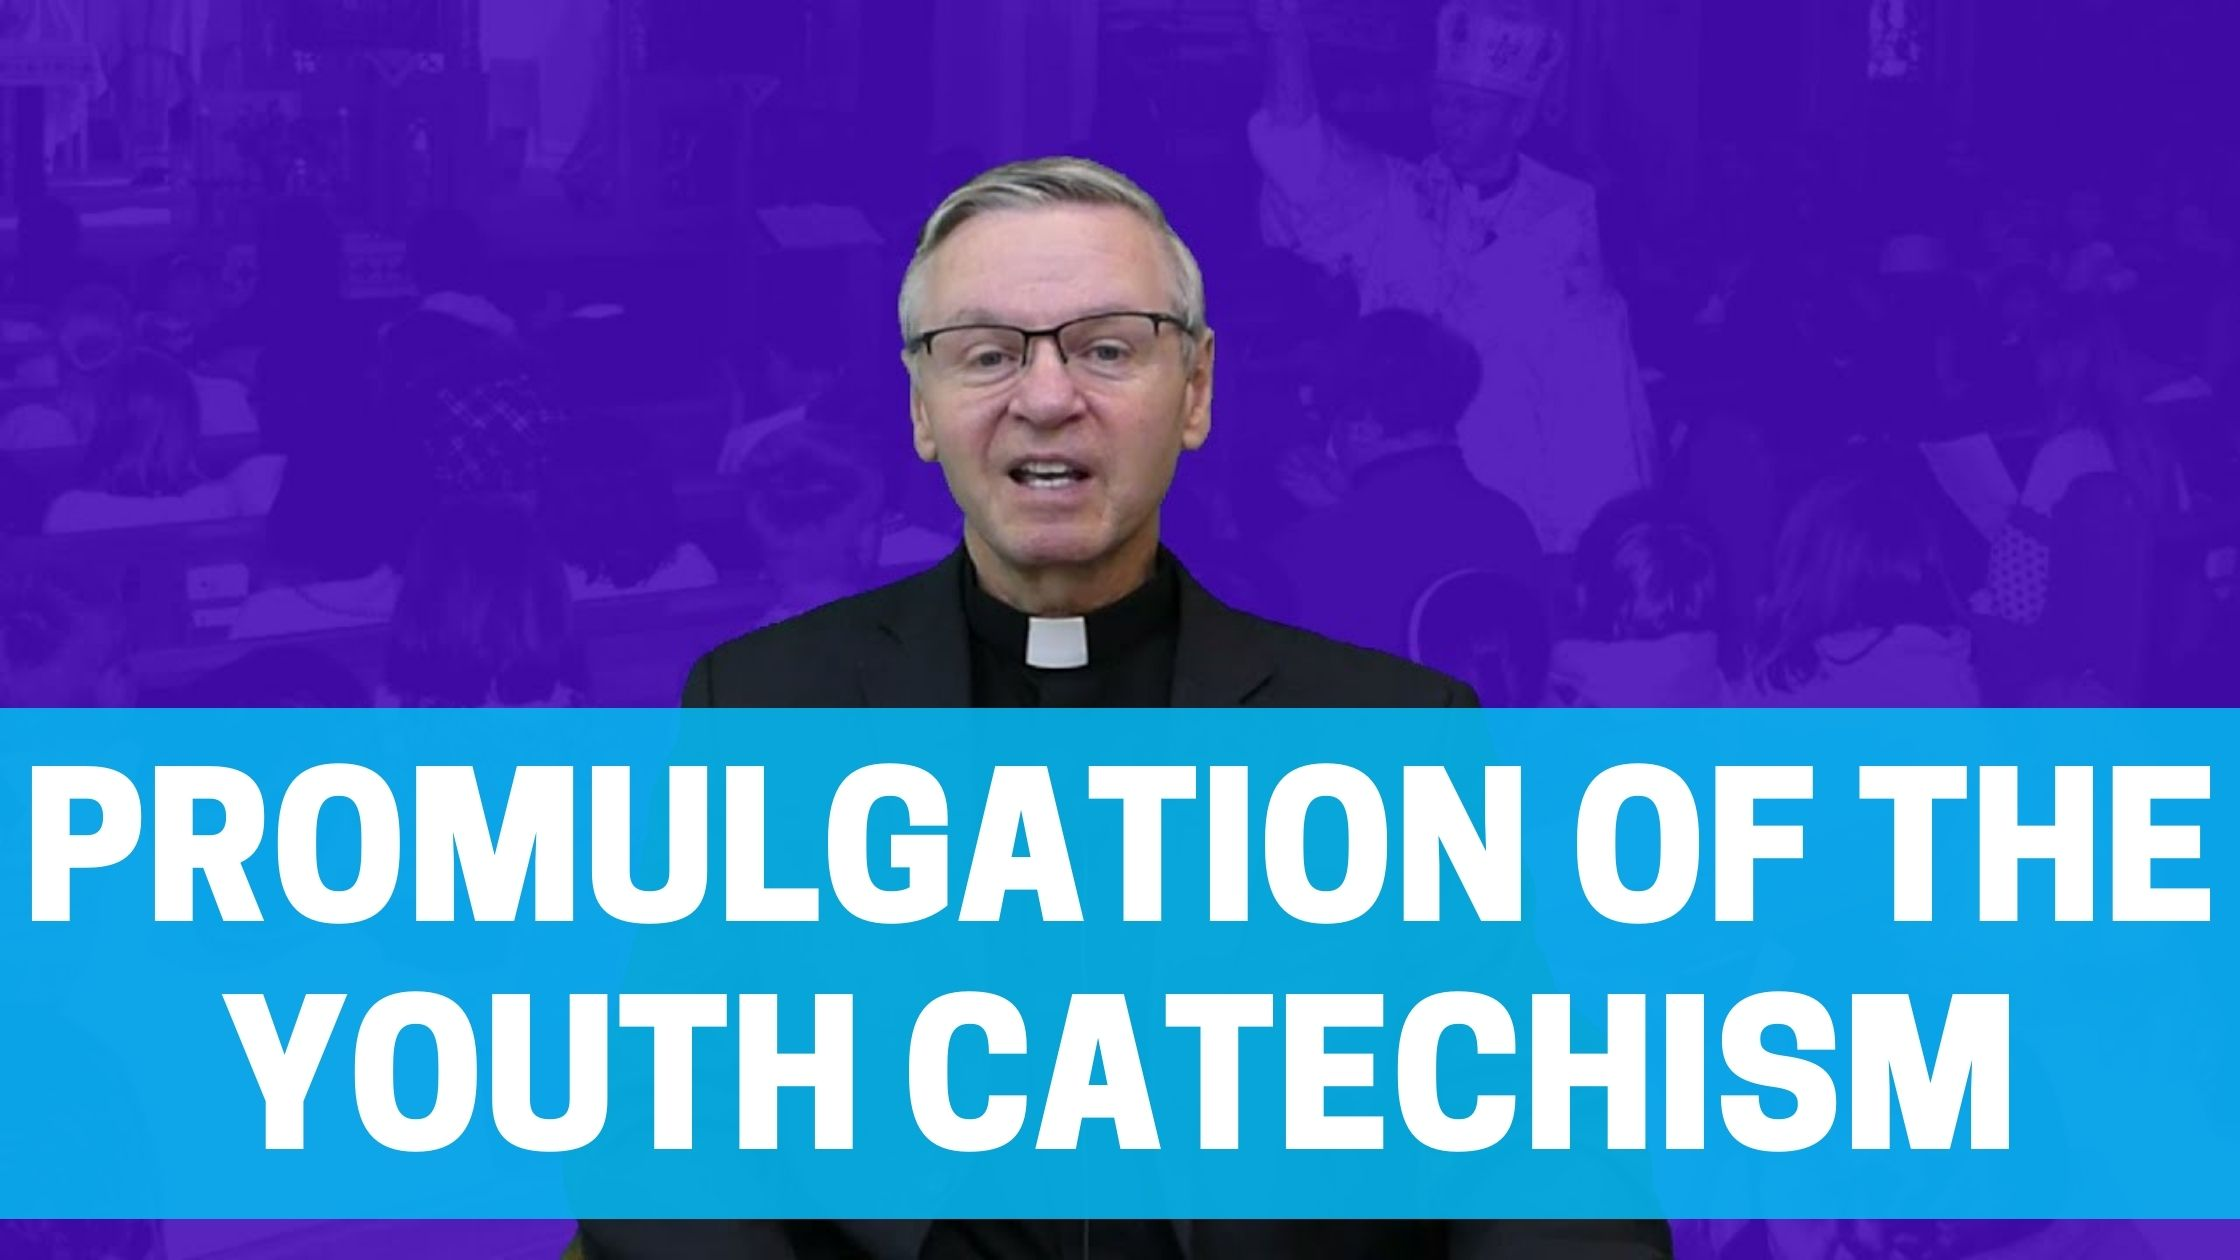 Youth Catechism